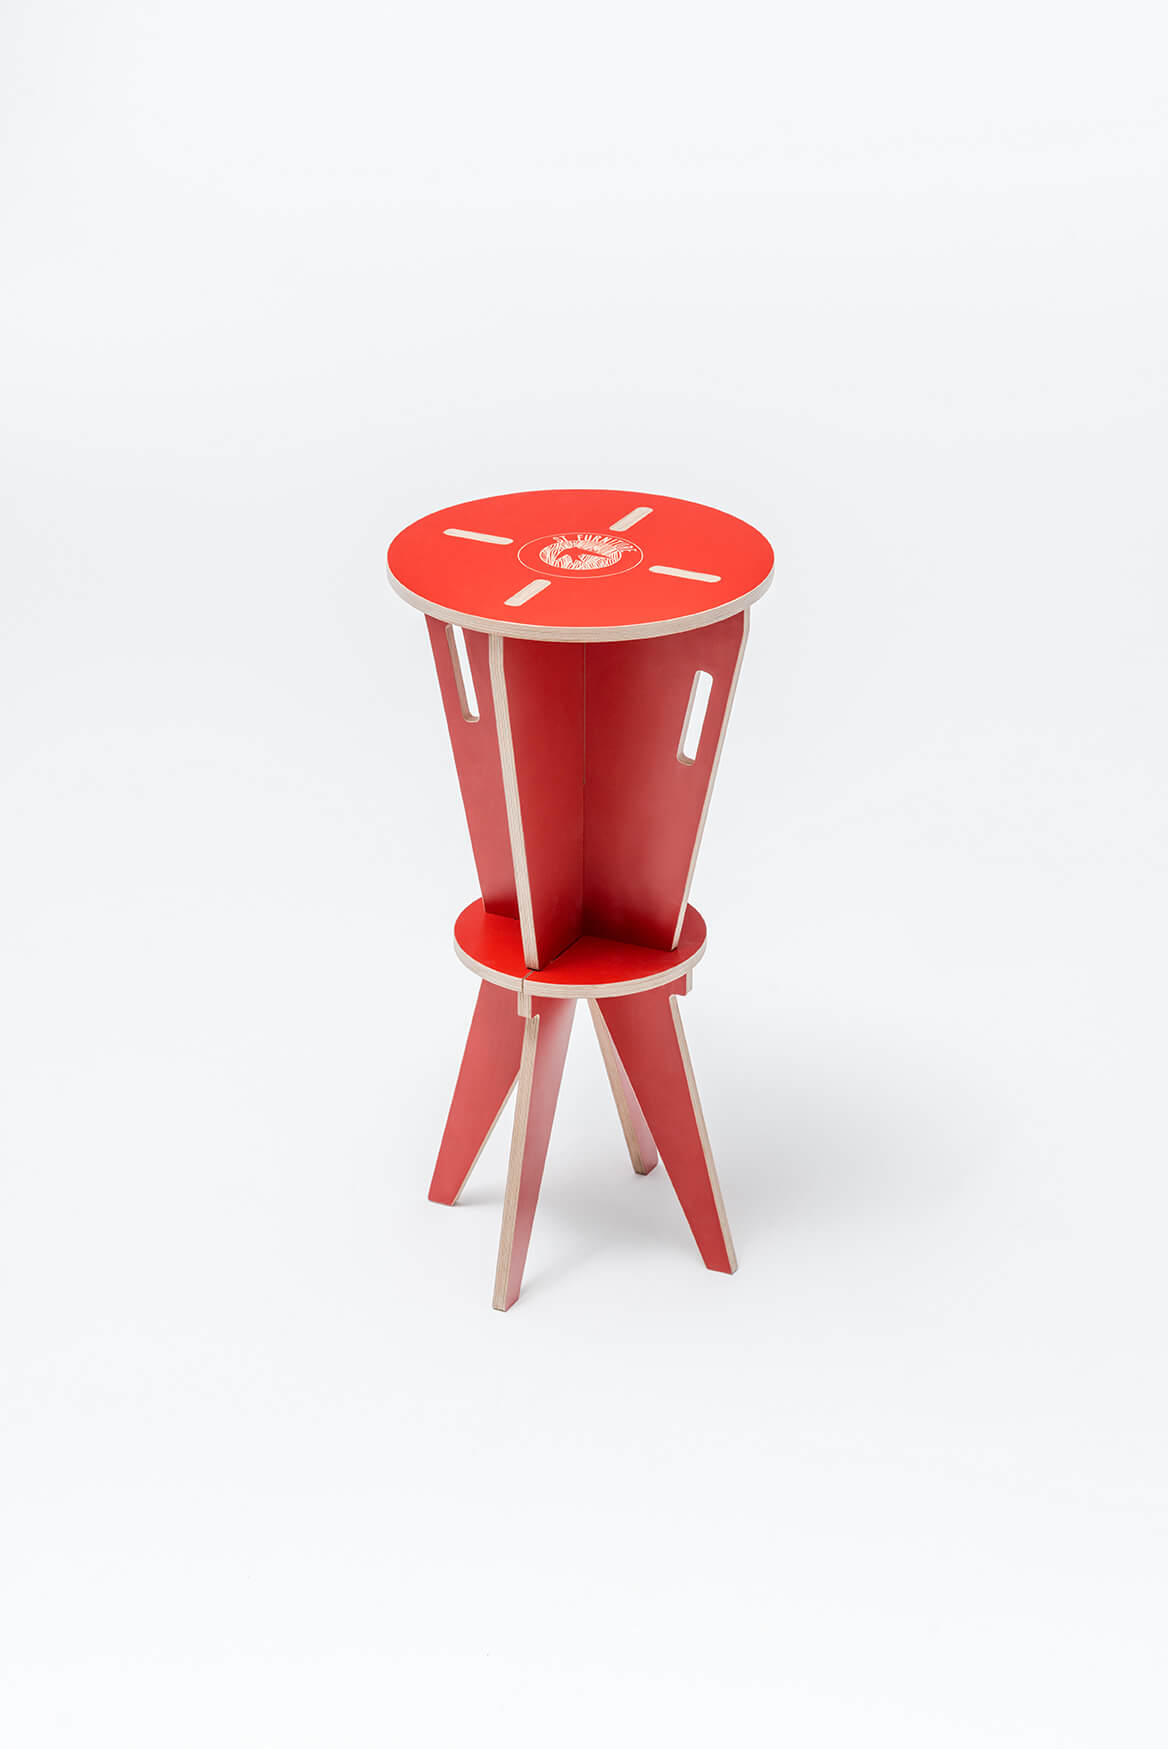 st-hocker-swallow-tail-furniture-red-3